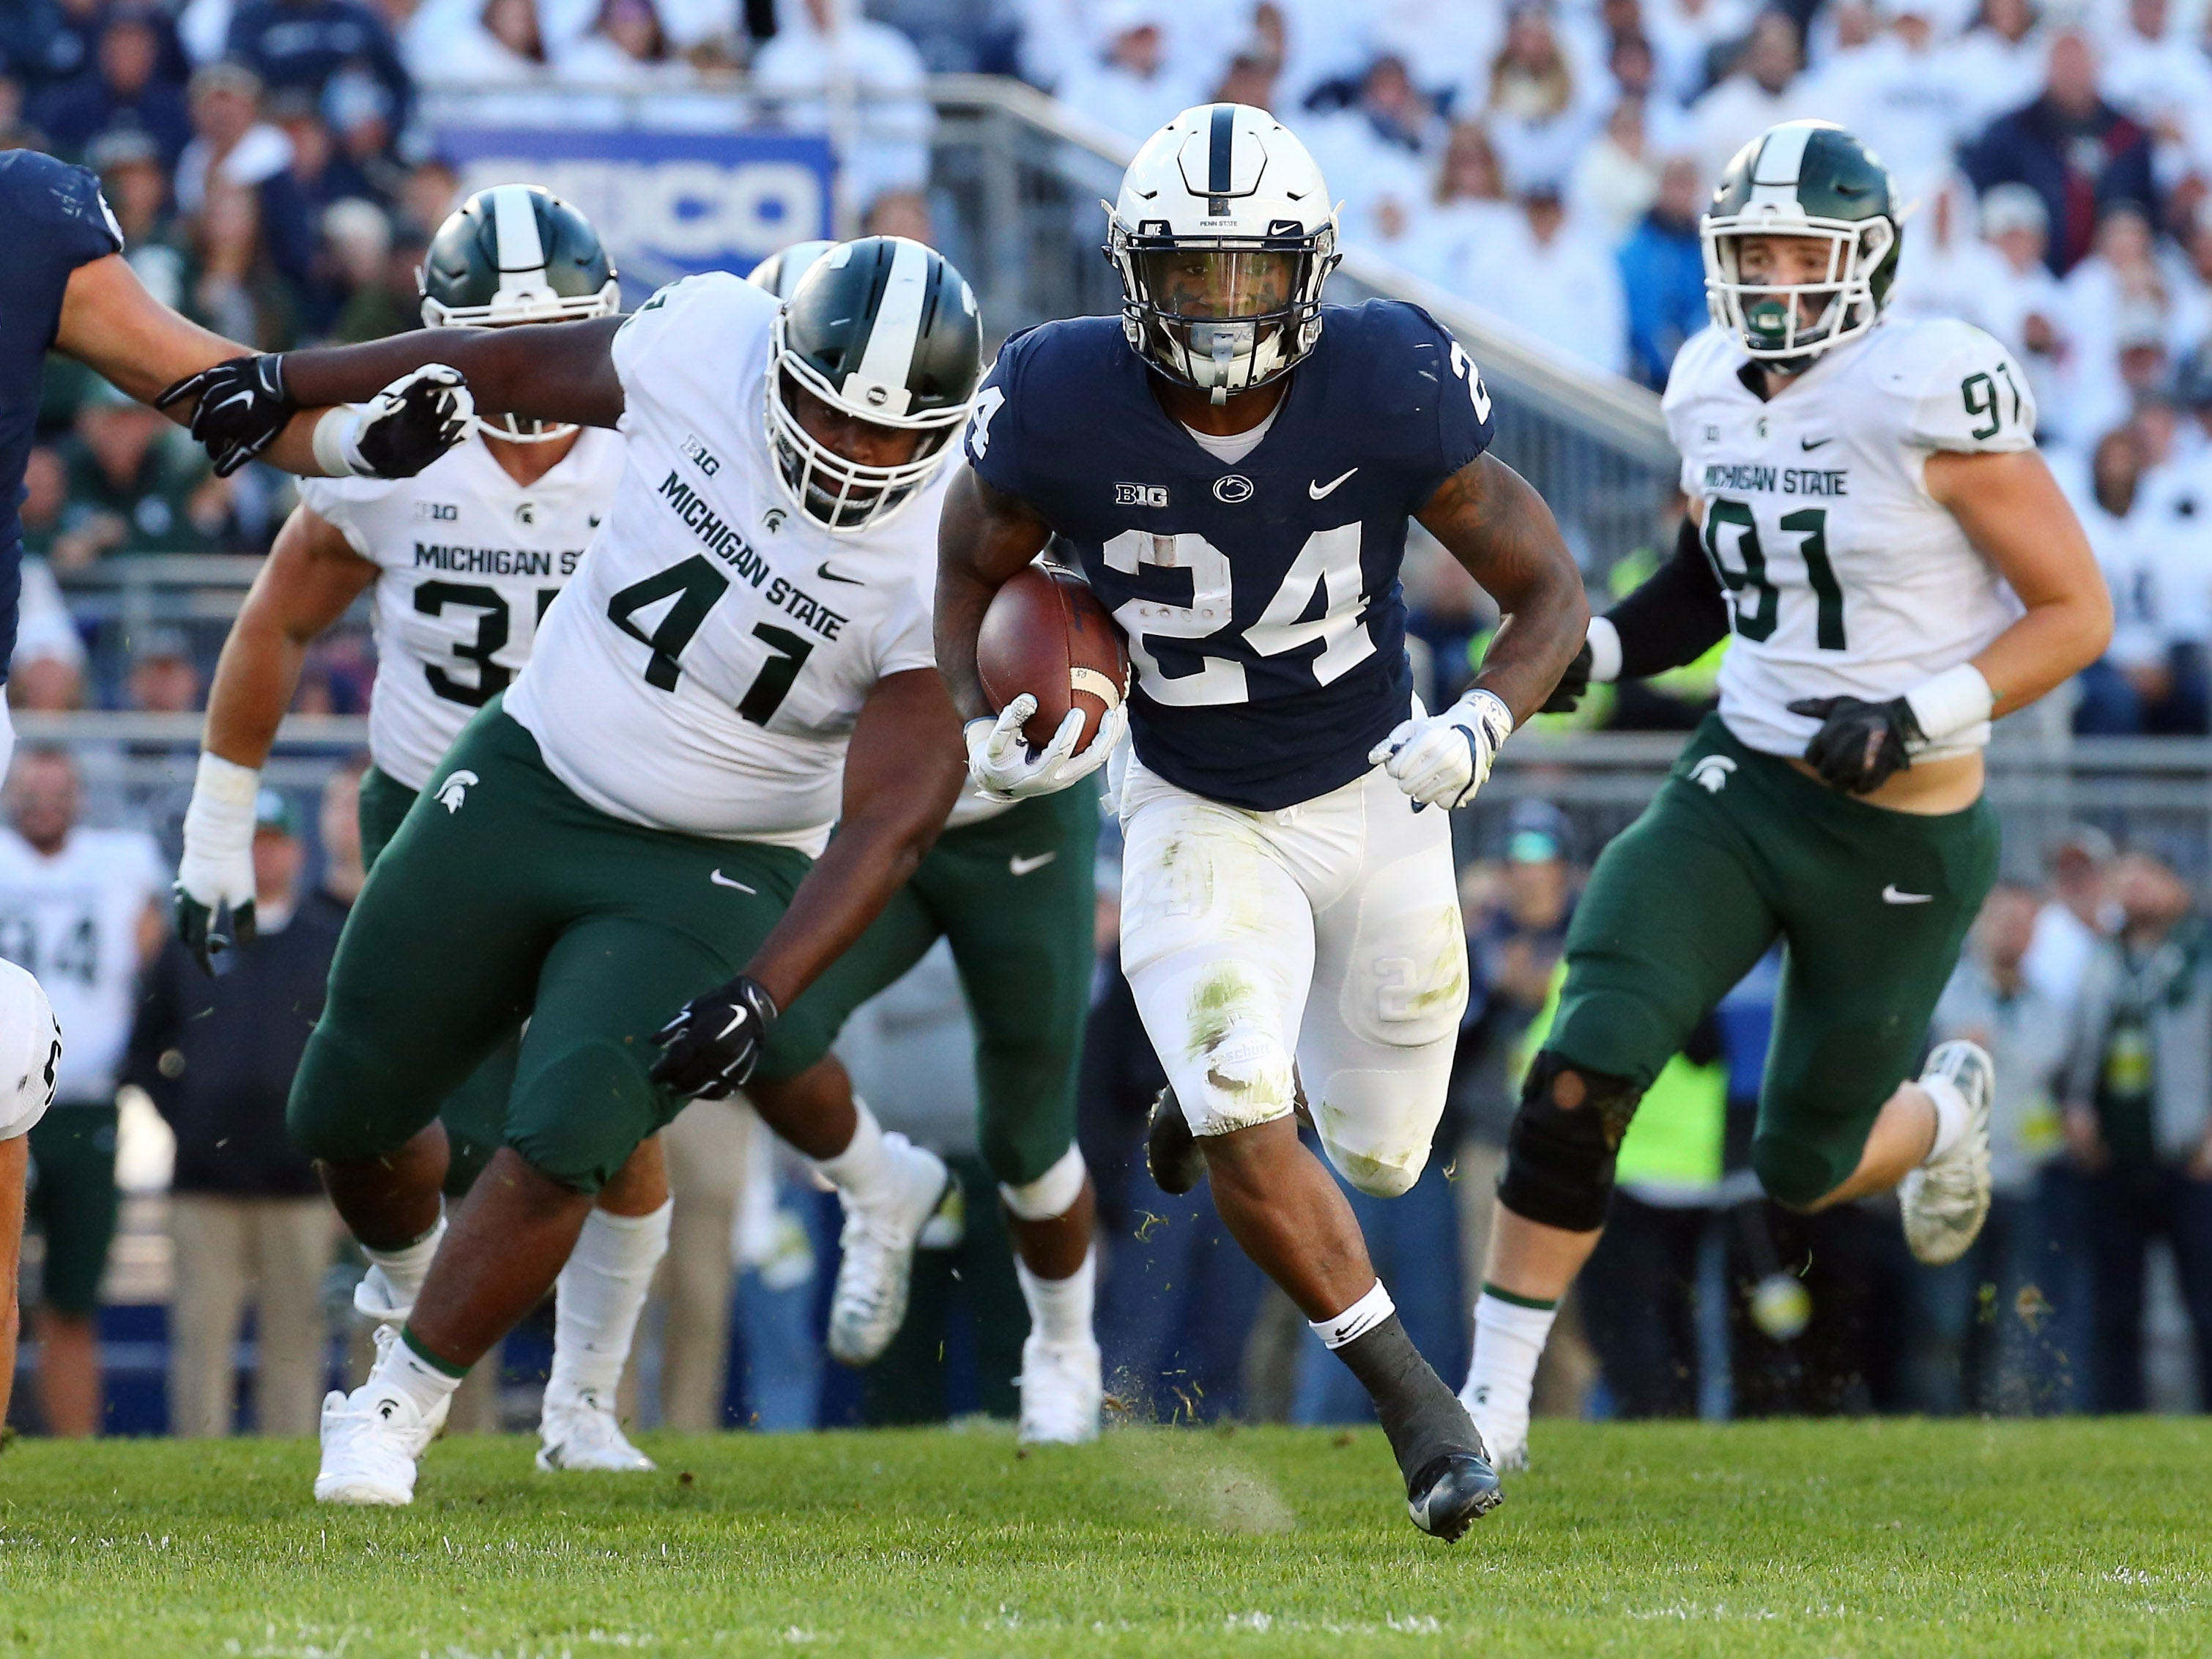 Penn State Nittany Lions running back Miles Sanders (24) runs with the ball past Michigan State Spartans defensive tackle Gerald Owens (41) during the second quarter at Beaver Stadium.